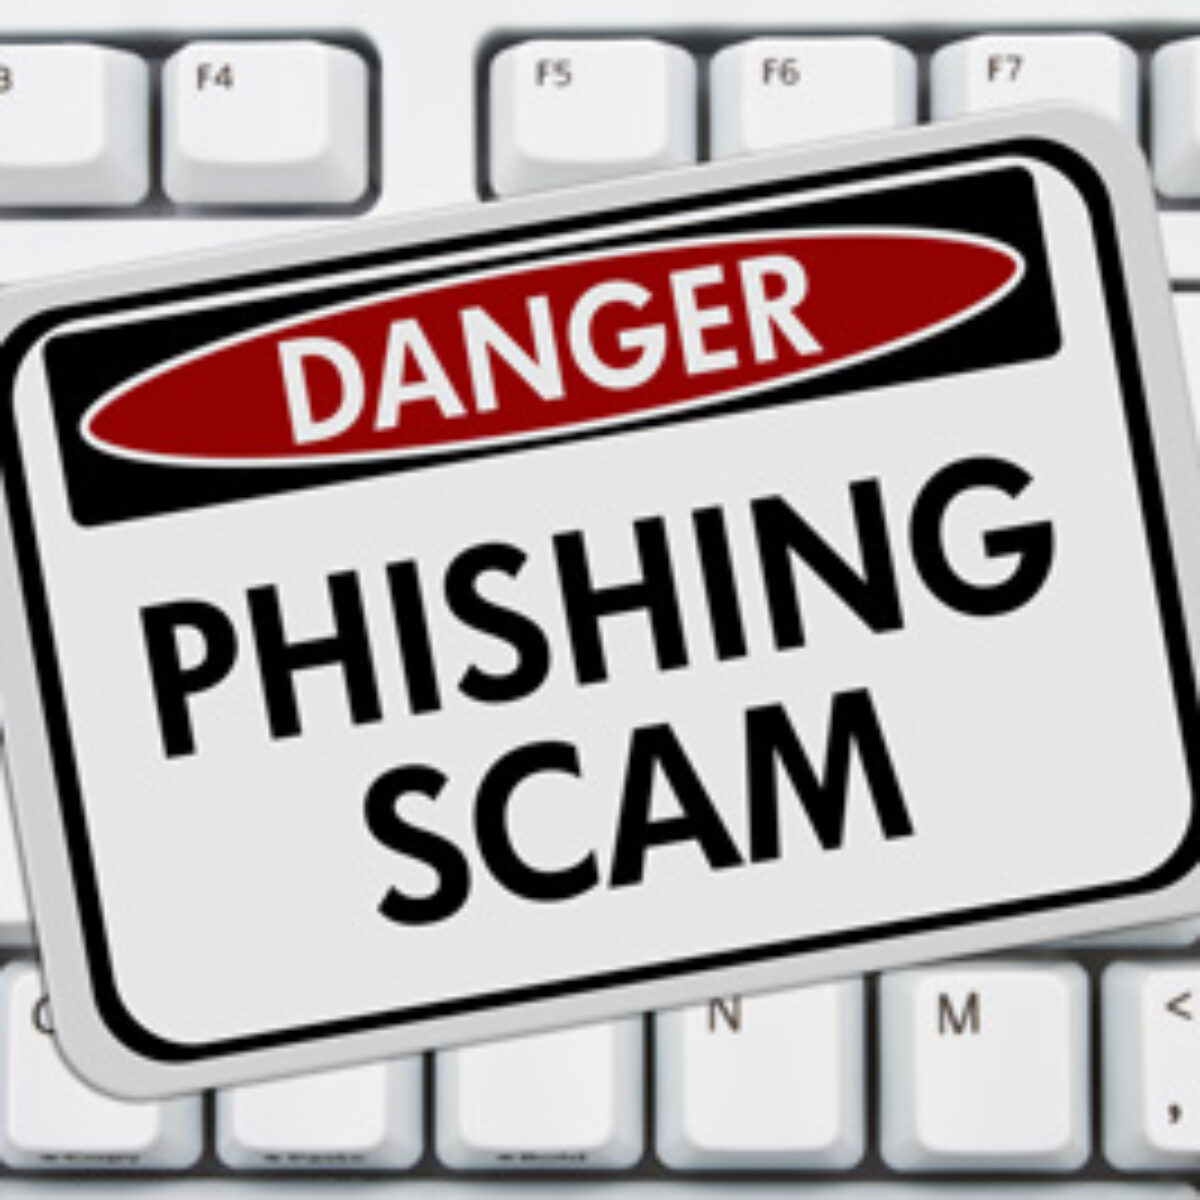 scam-ppp-phishing-400